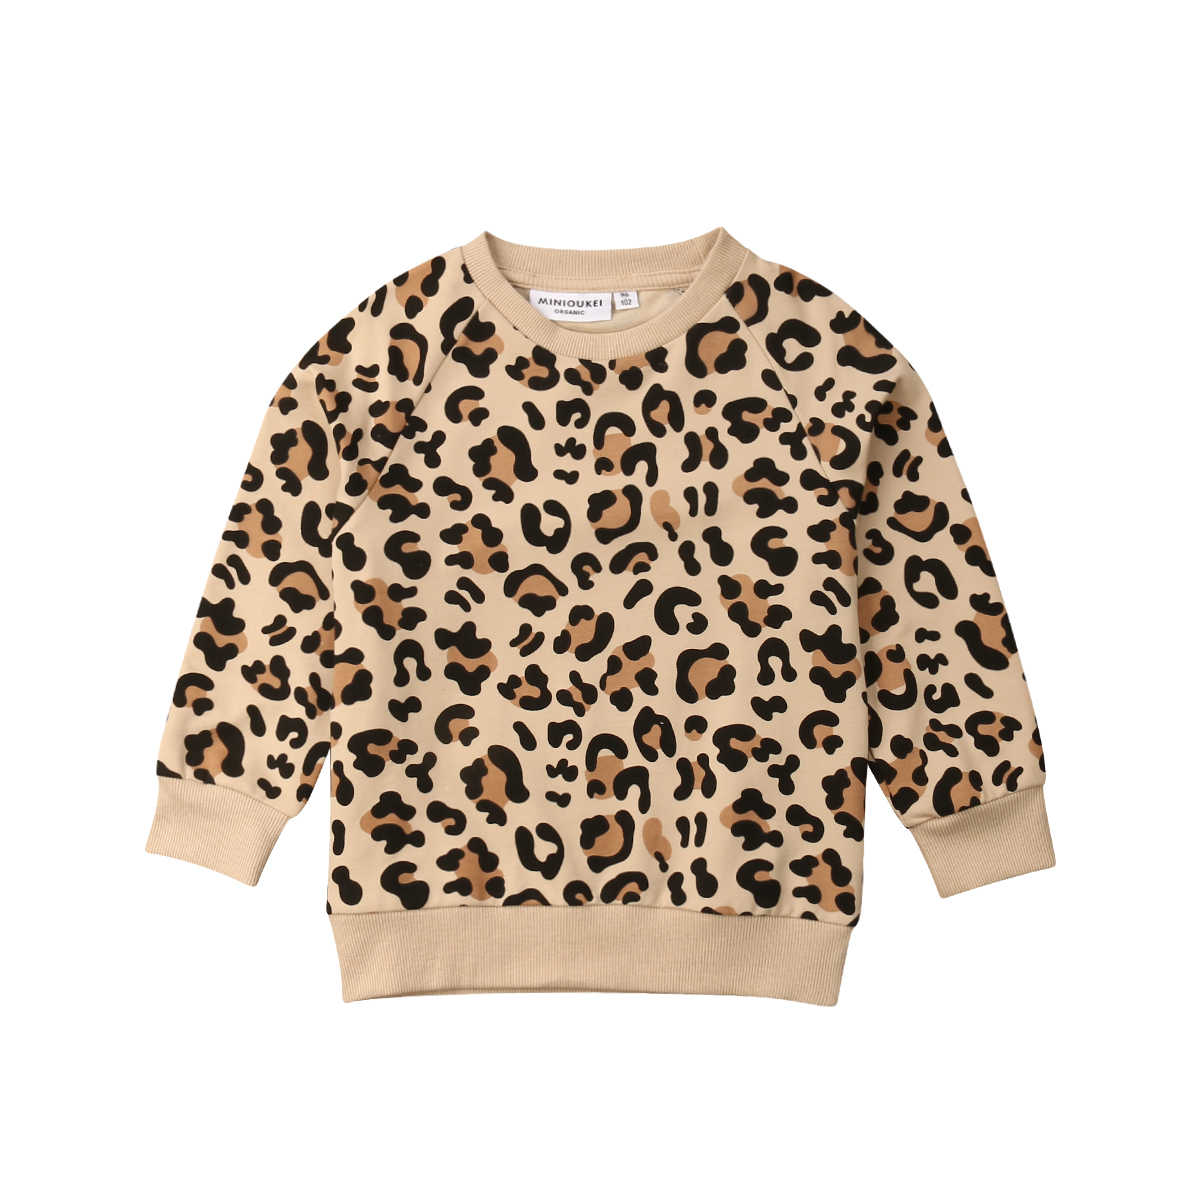 2019 New Kids Baby Girls Boys Sweatshirts Long Sleeve Leopard Print Pullover Warm Kids Clothes Outfits 1- 7T